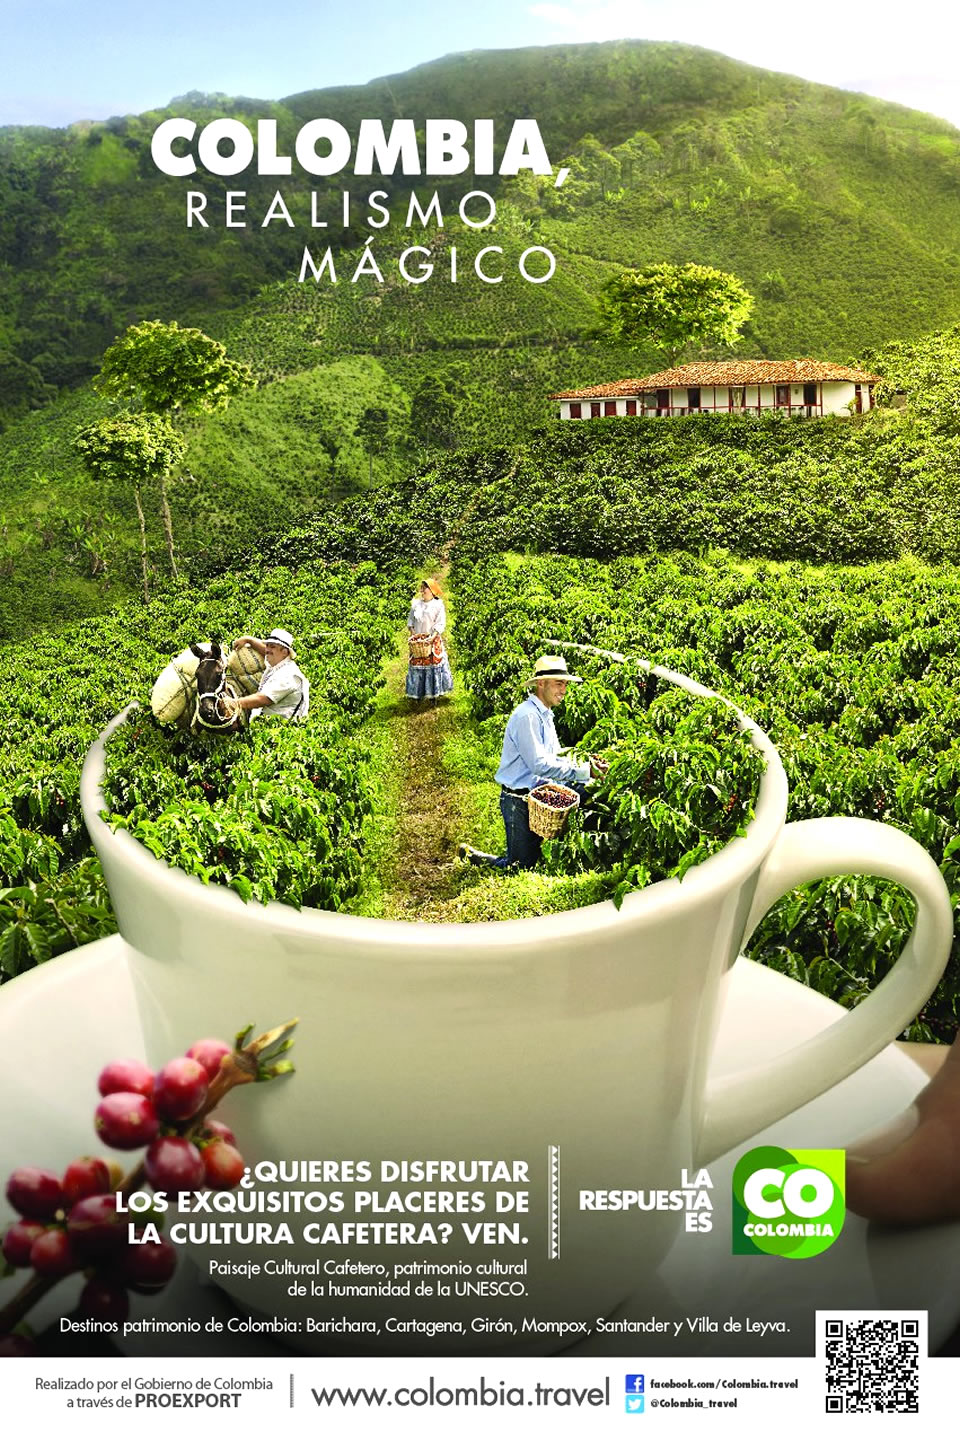 Coffee Cultural Landscape Tourism Advertisement Poster of Colombia Magical Realism